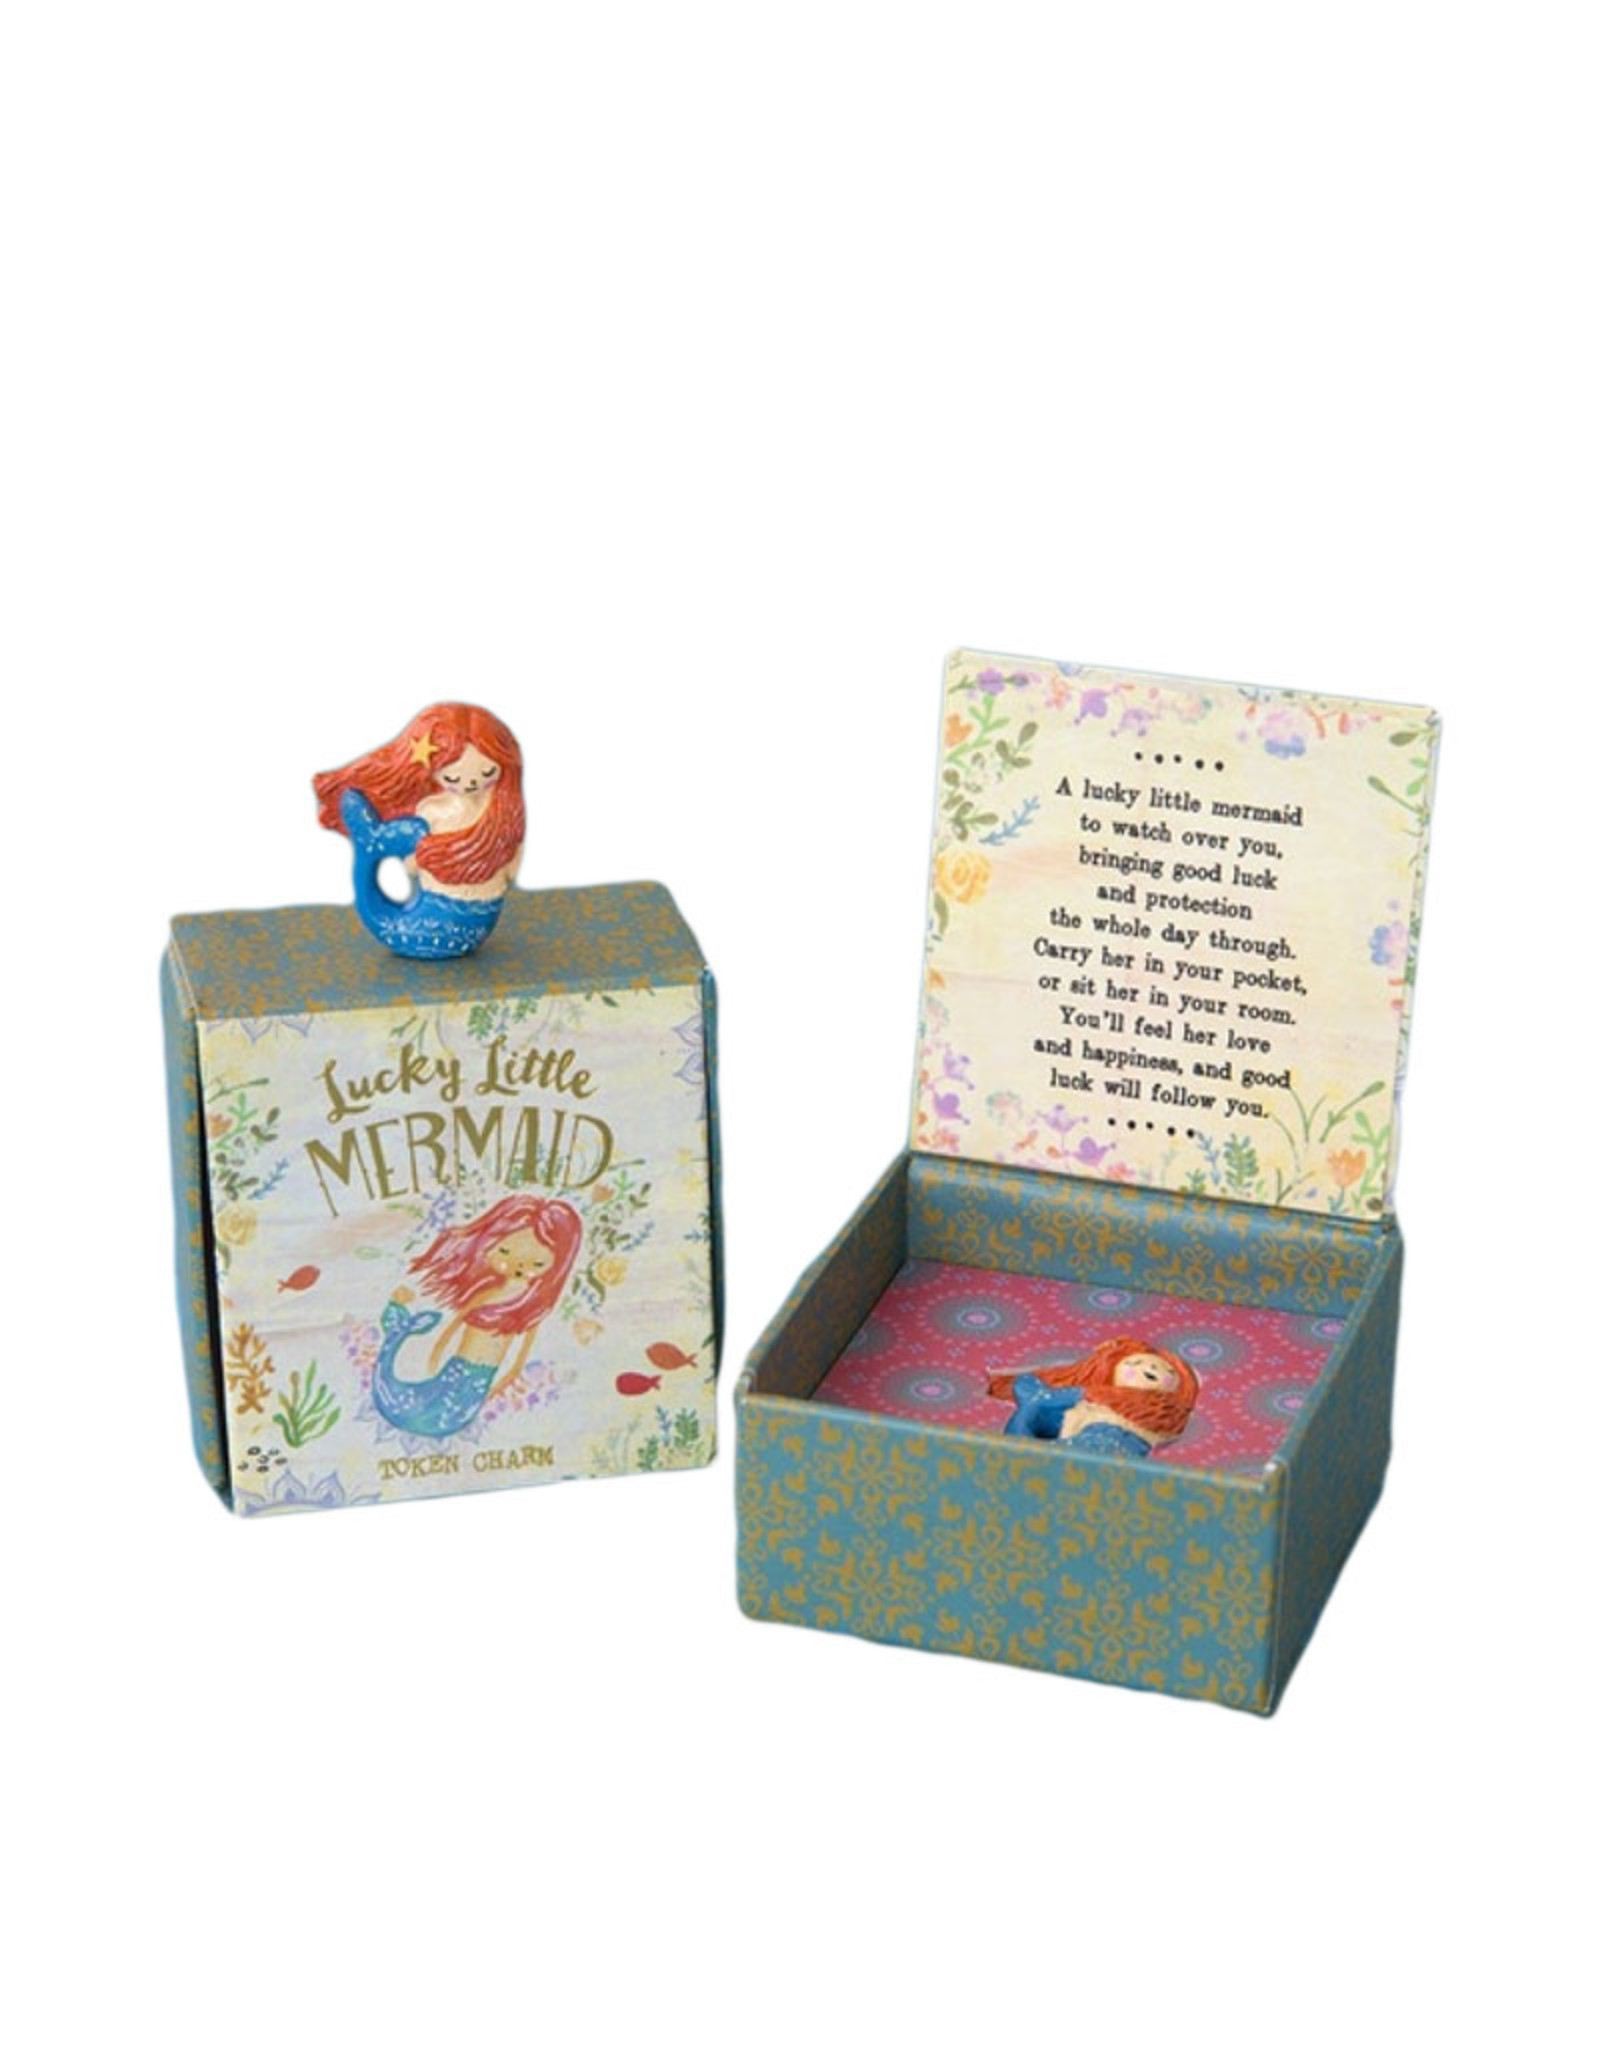 Mermaid lucky charm in a gift box